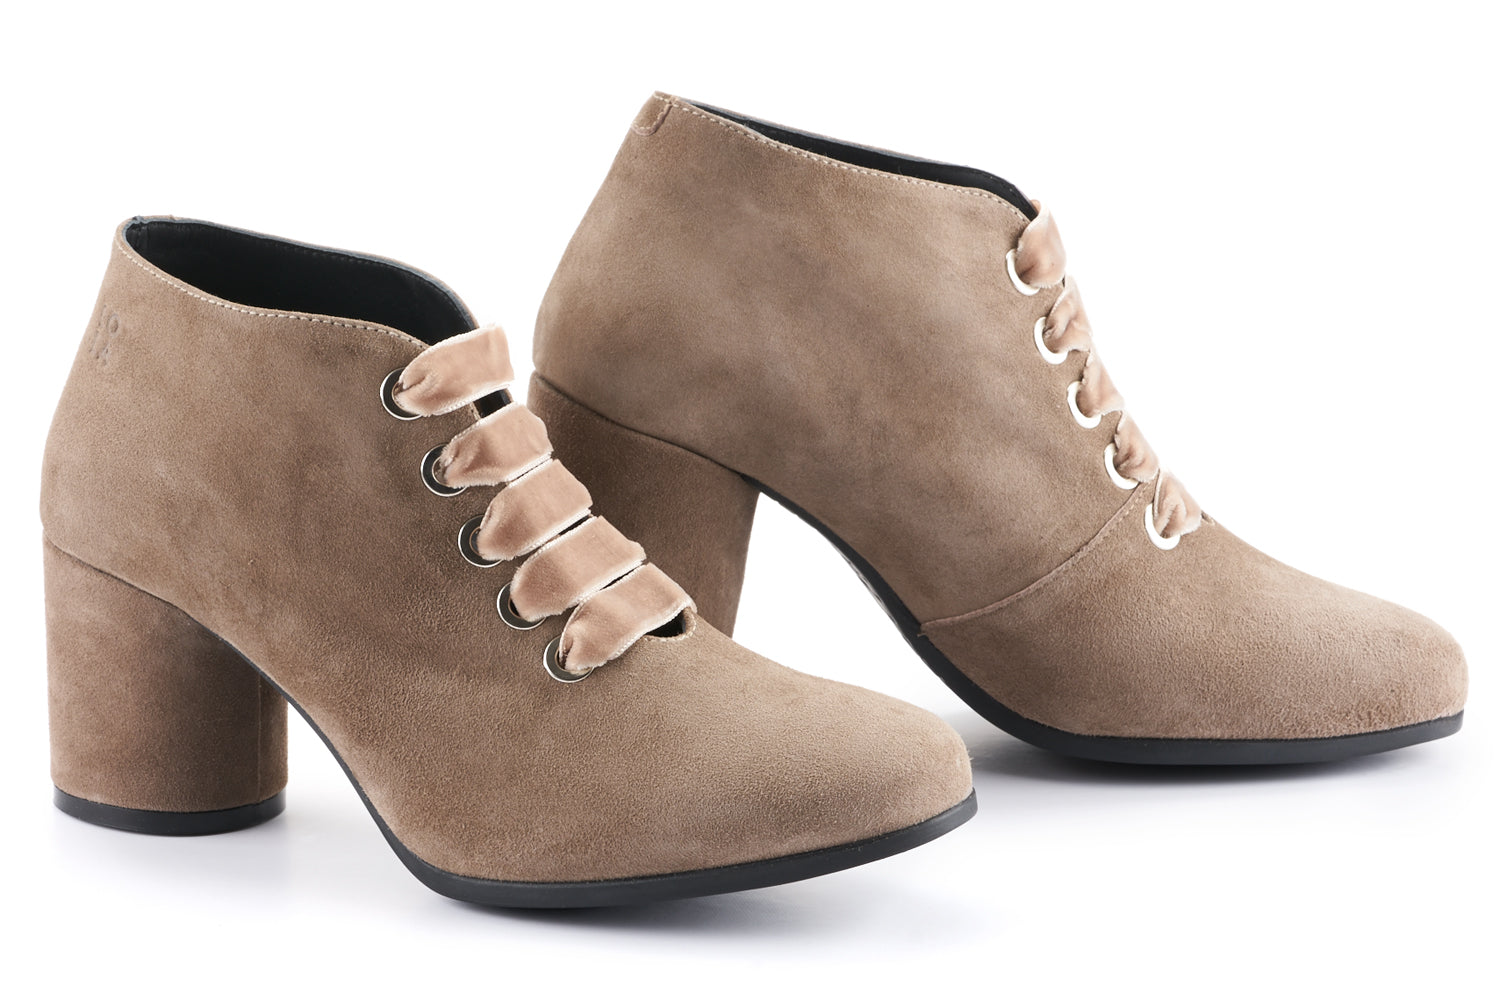 Lexi Suede Ankle Boot - Stone